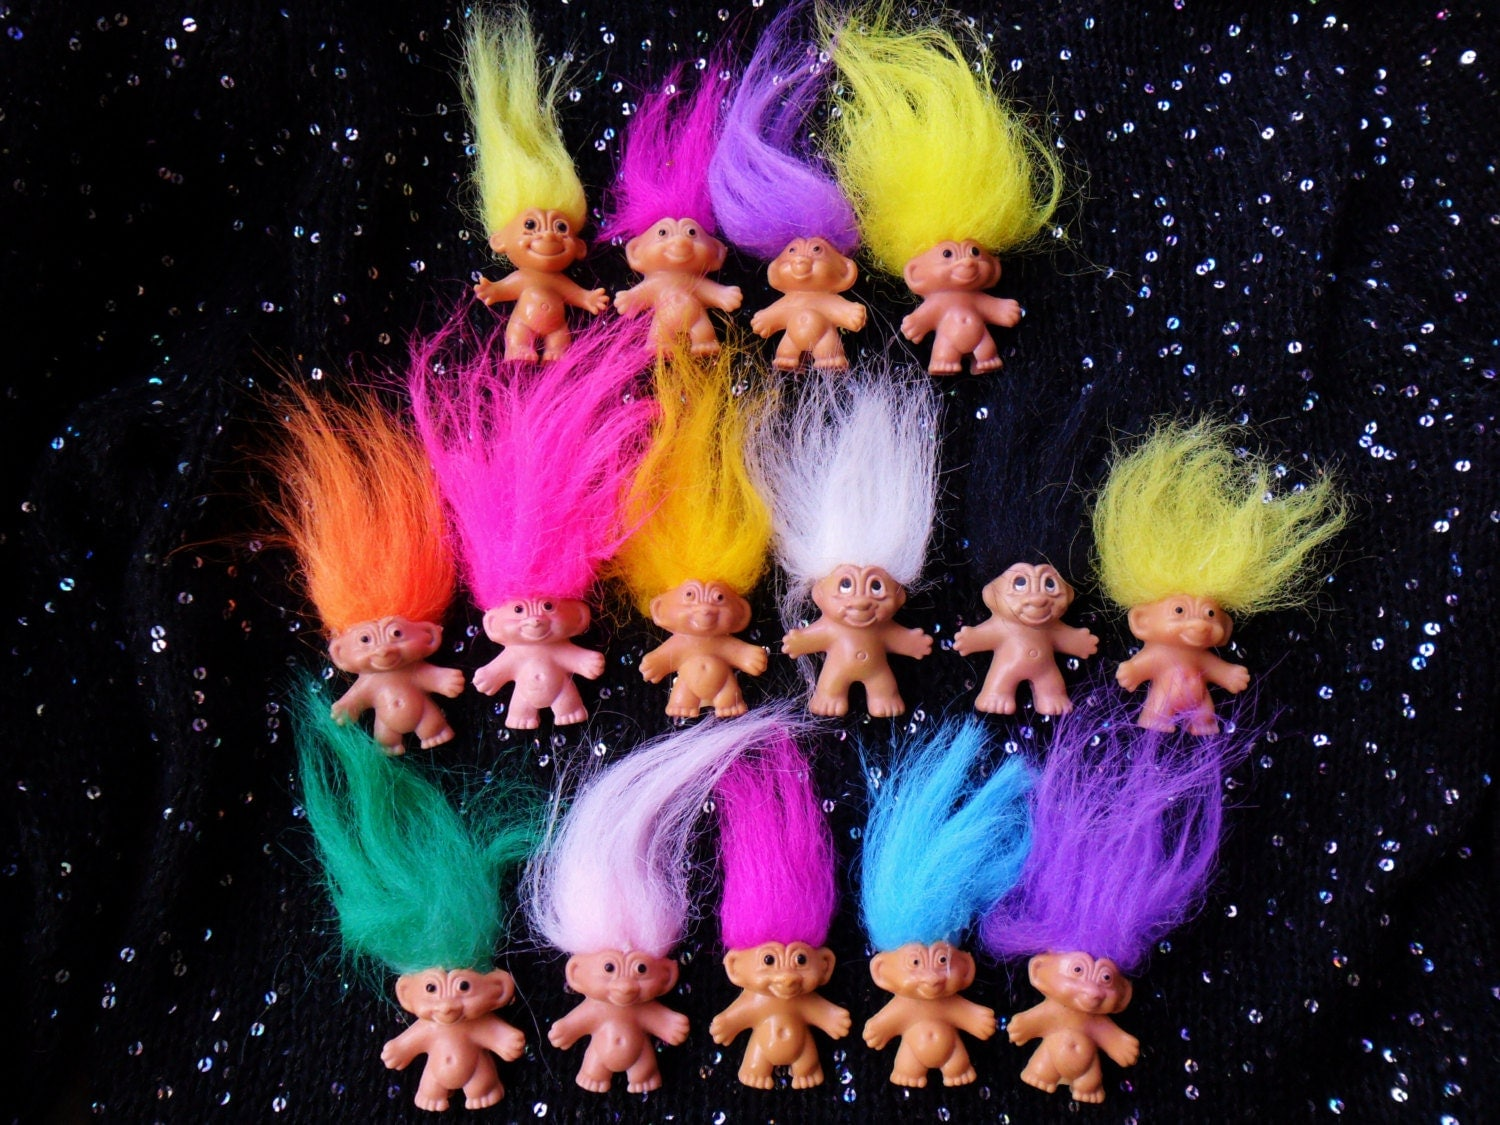 Toys From The 90s : Reserved vintage retro s troll doll collectible toy